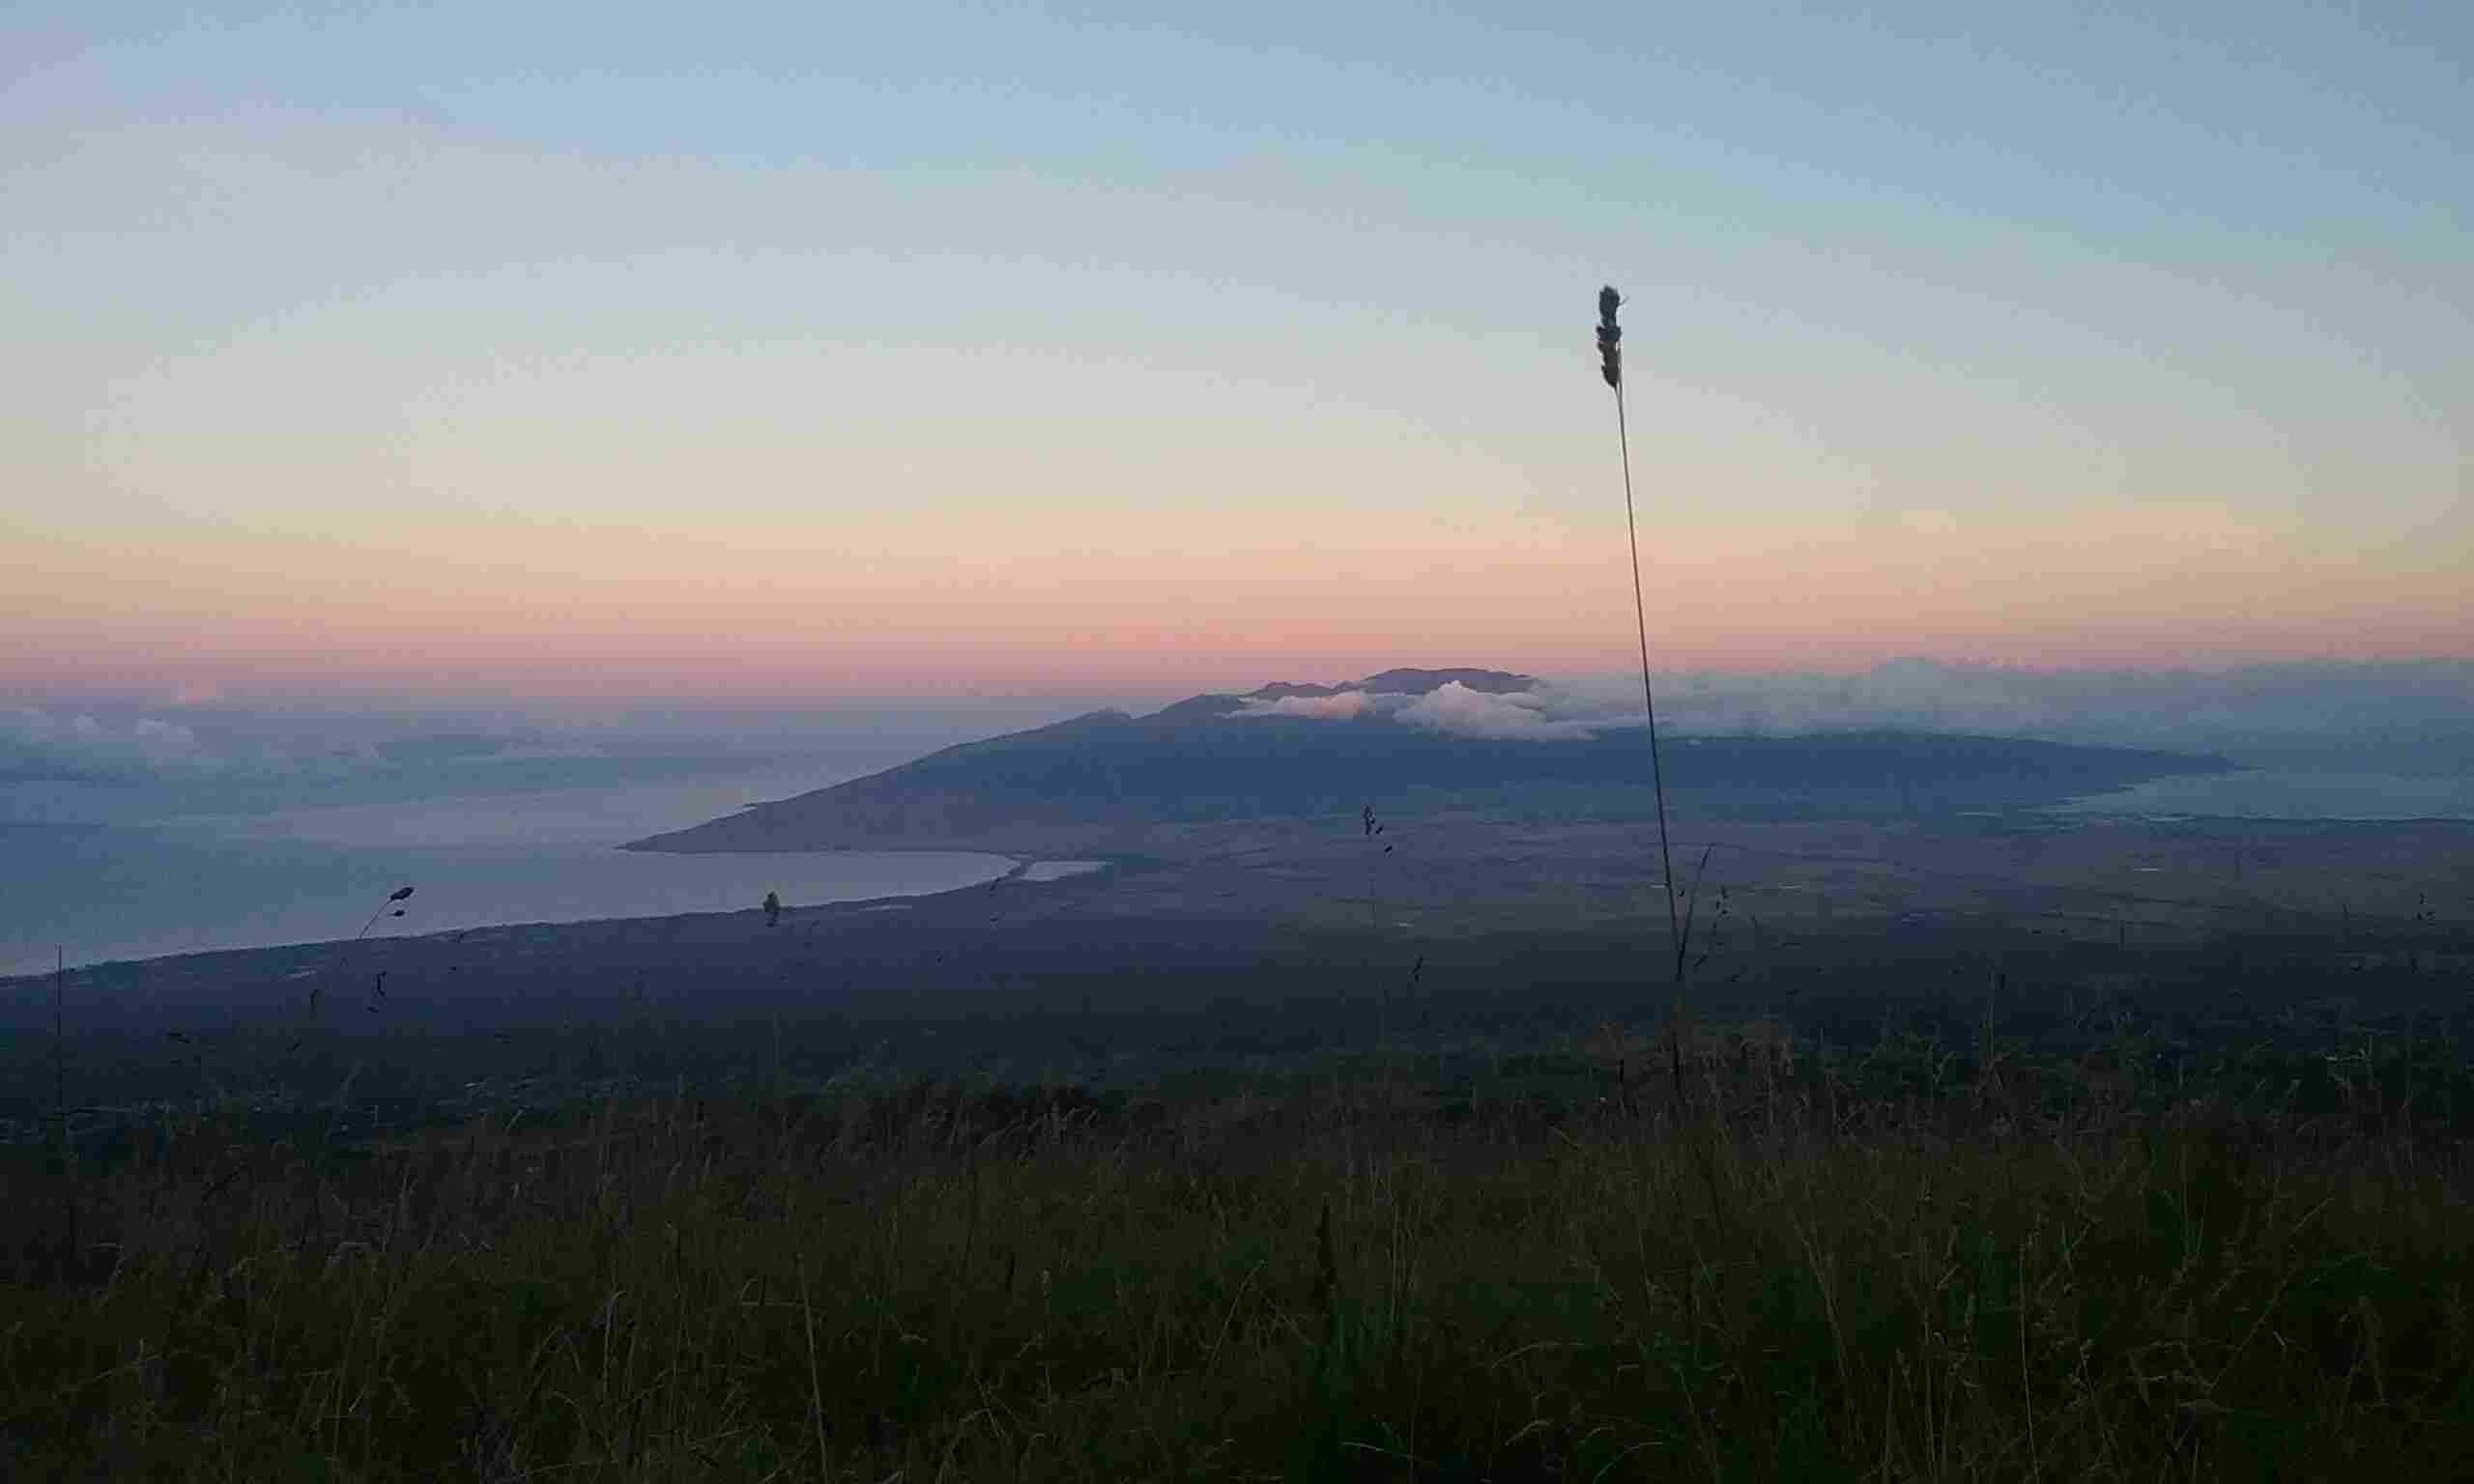 mountains in the distance at sunrise, grassy field in the forefront, maui